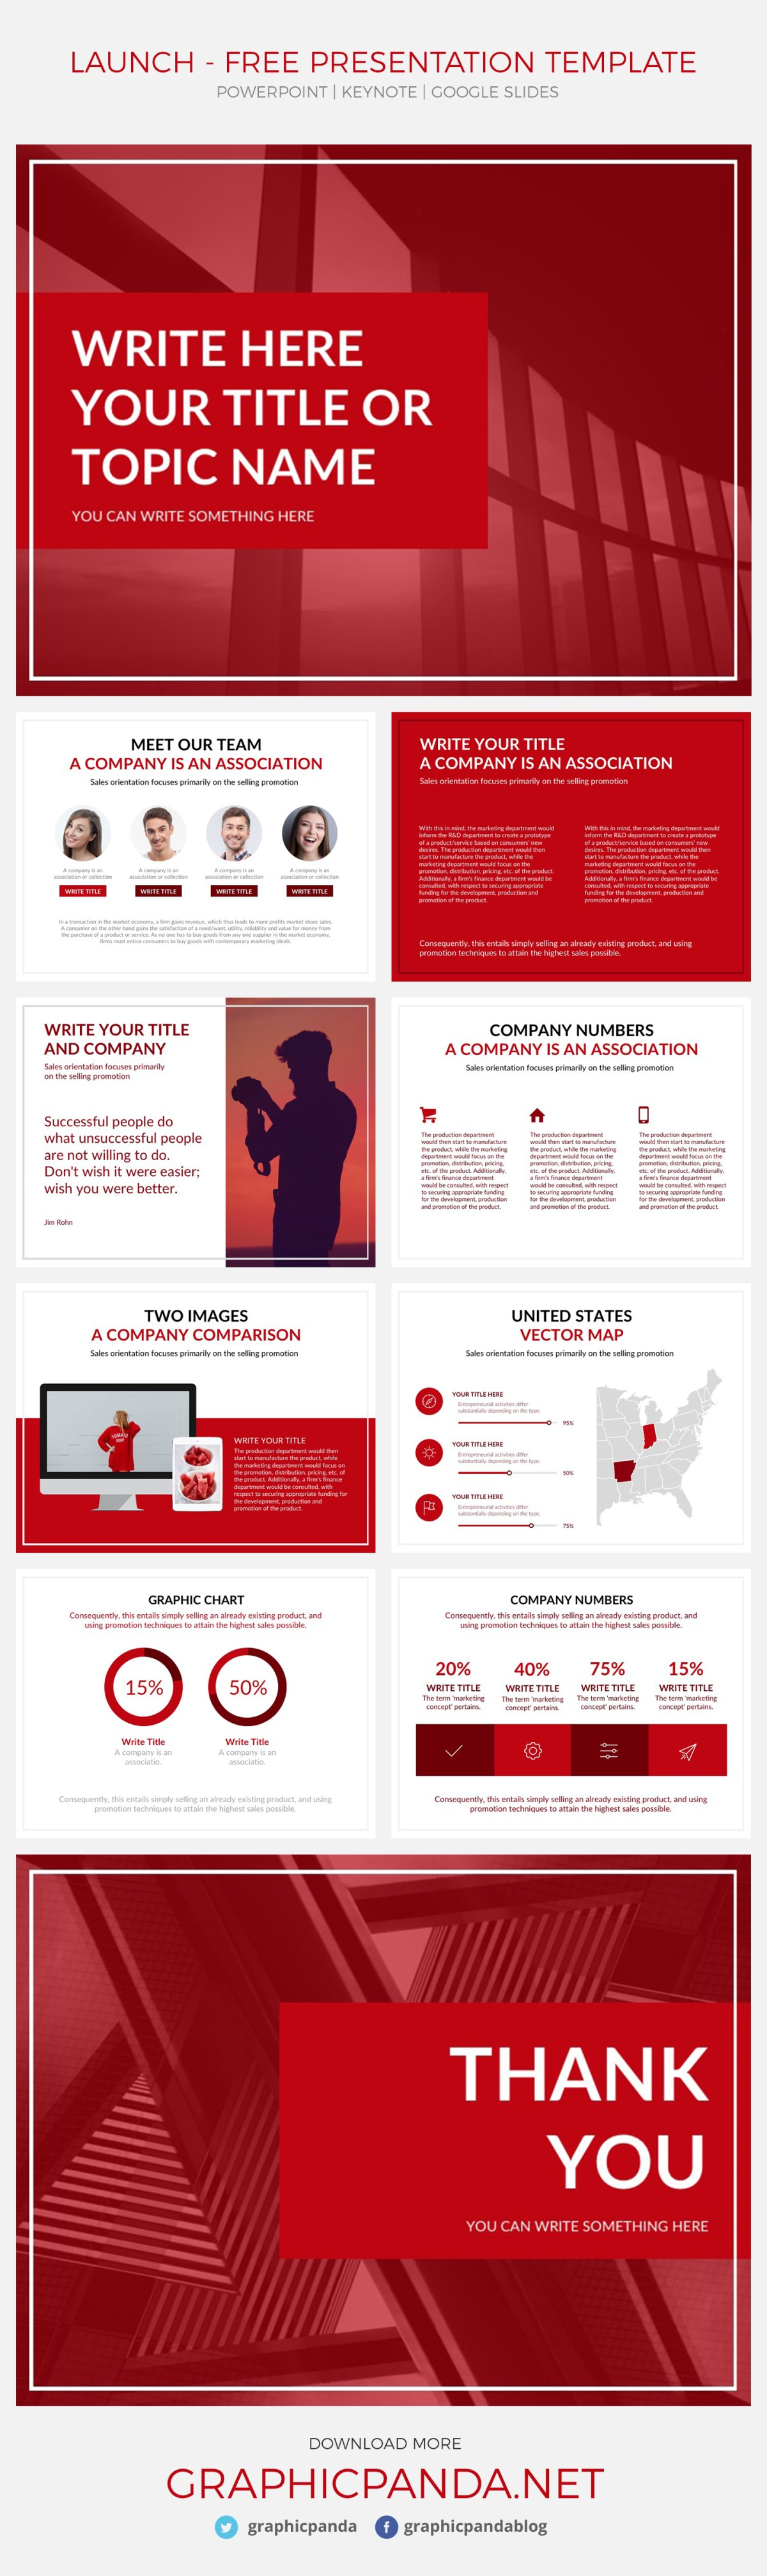 Launch Free Presentation Template Powerpoint Keynote Google Slides - Awesome free red powerpoint templates concept